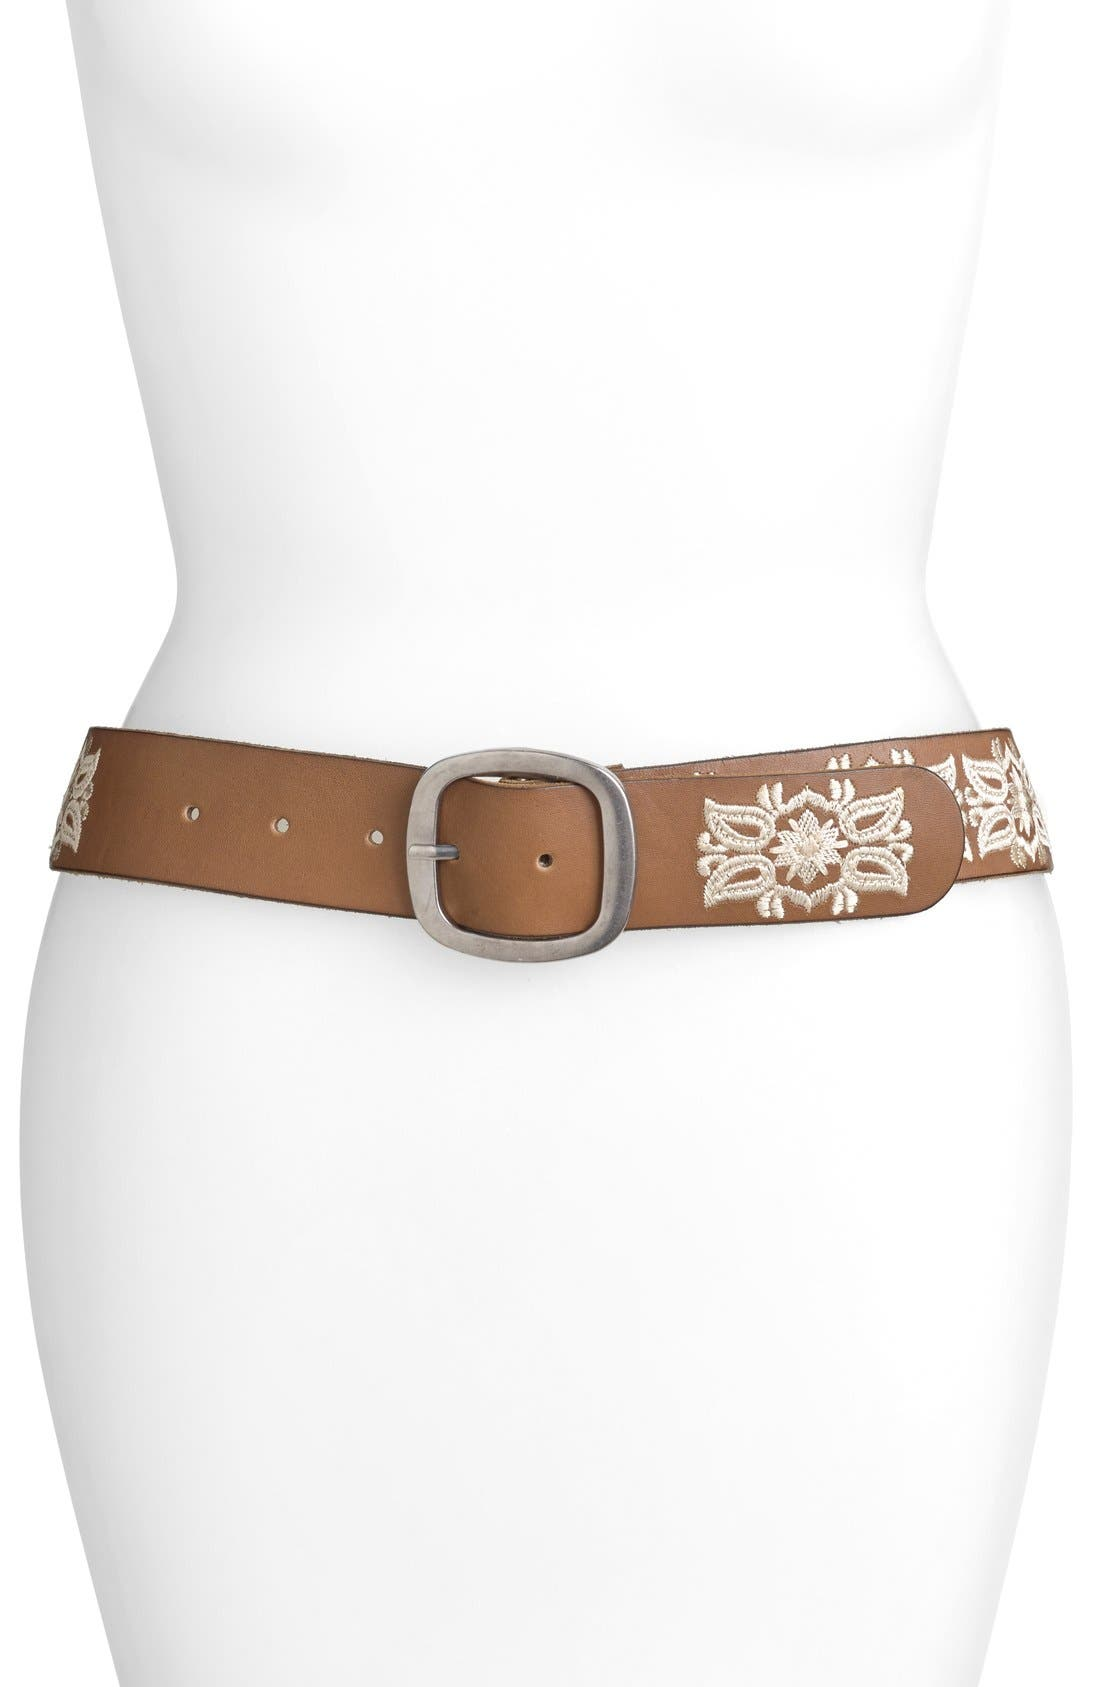 Alternate Image 1 Selected - Lucky Brand Embroidered Floral Belt